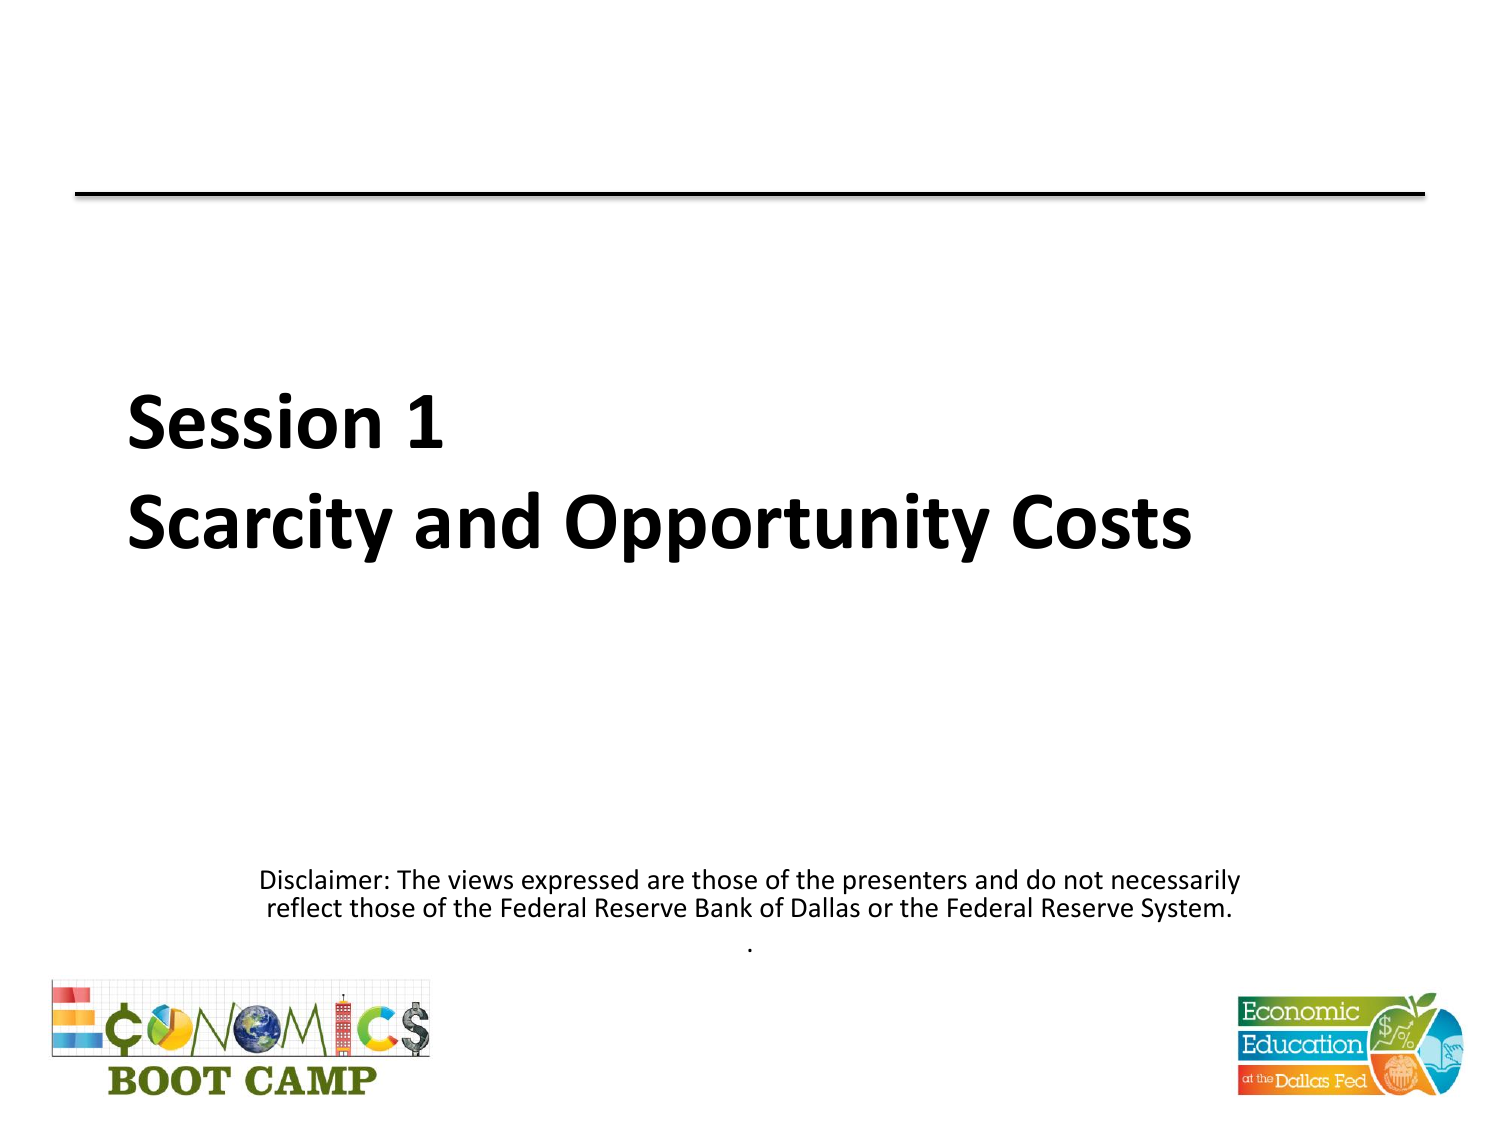 Scarcity and Opportunity Costs - Federal Reserve Bank of Dallas